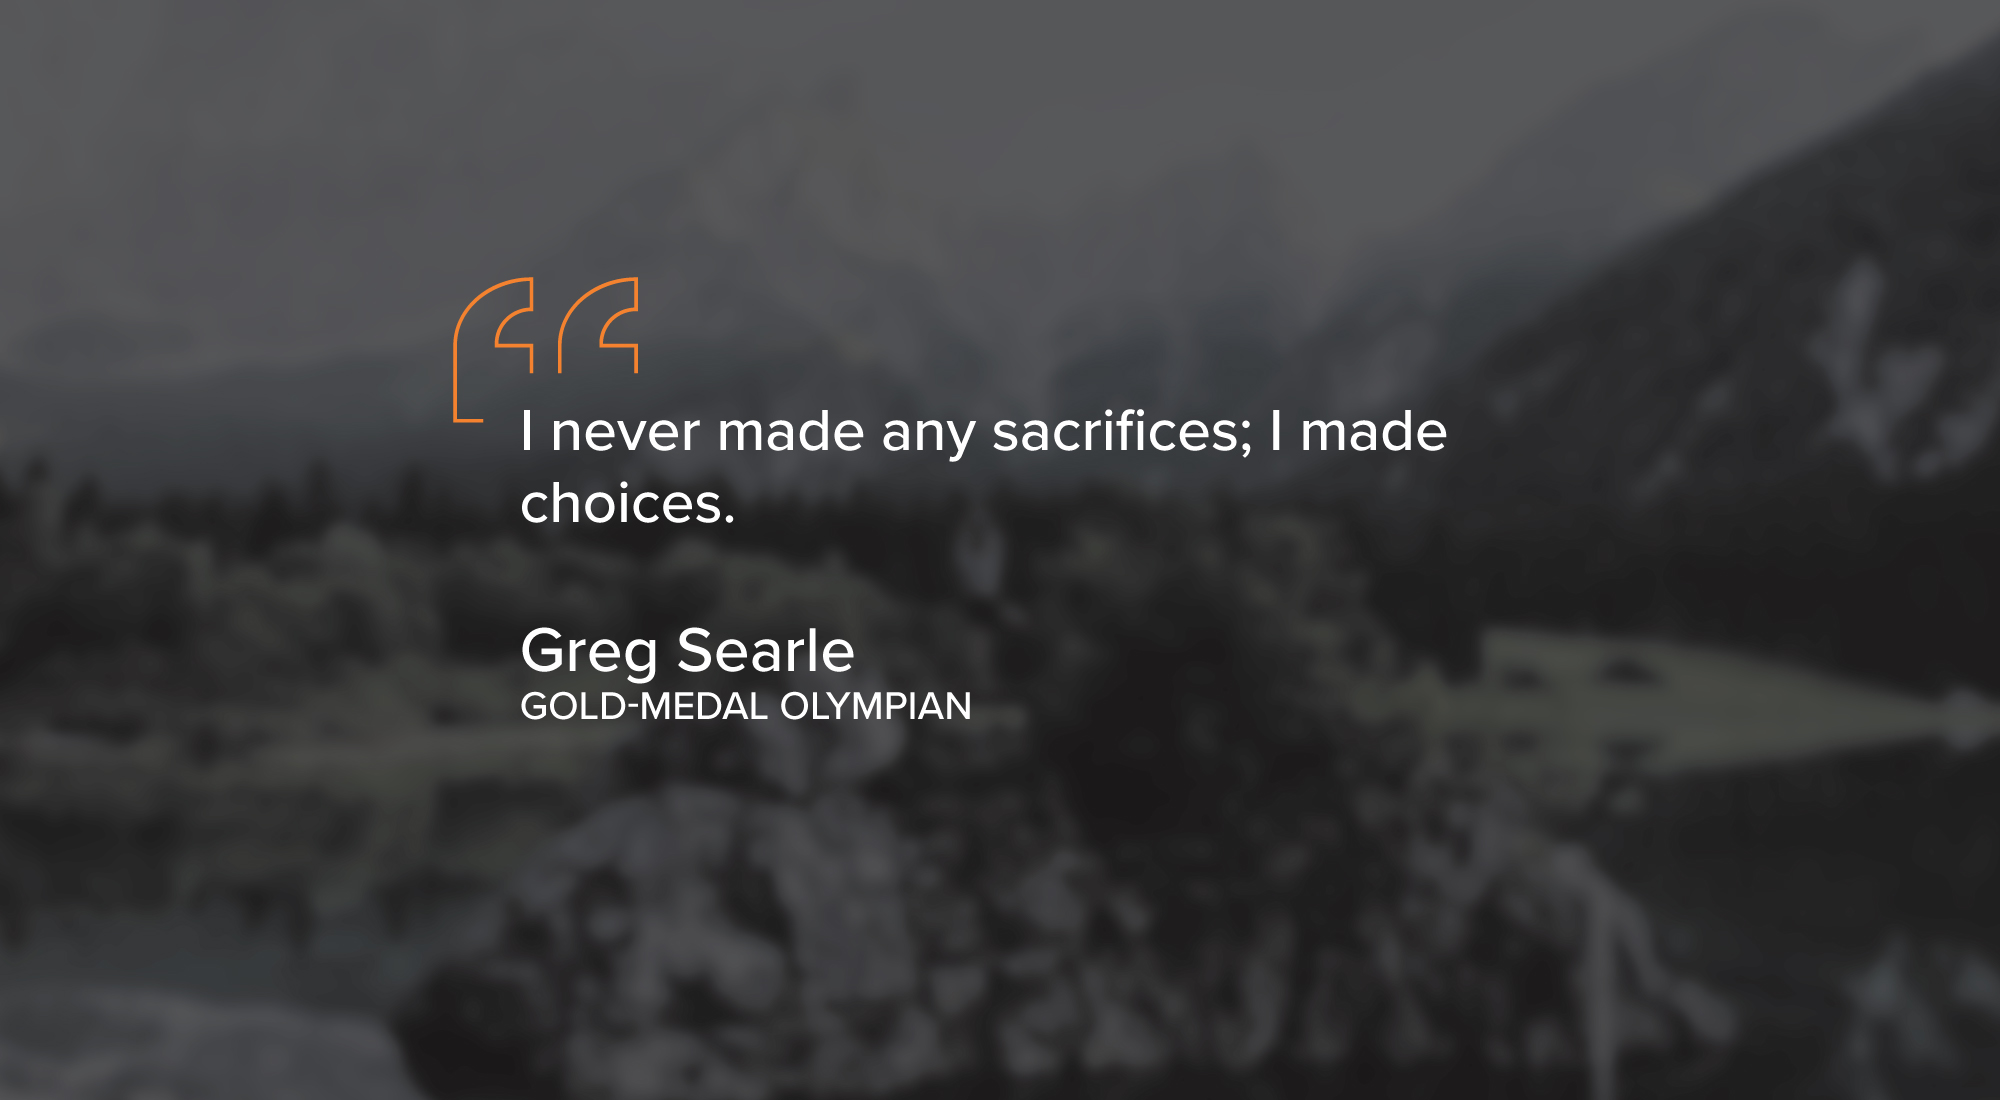 mental toughness greg searle olympic